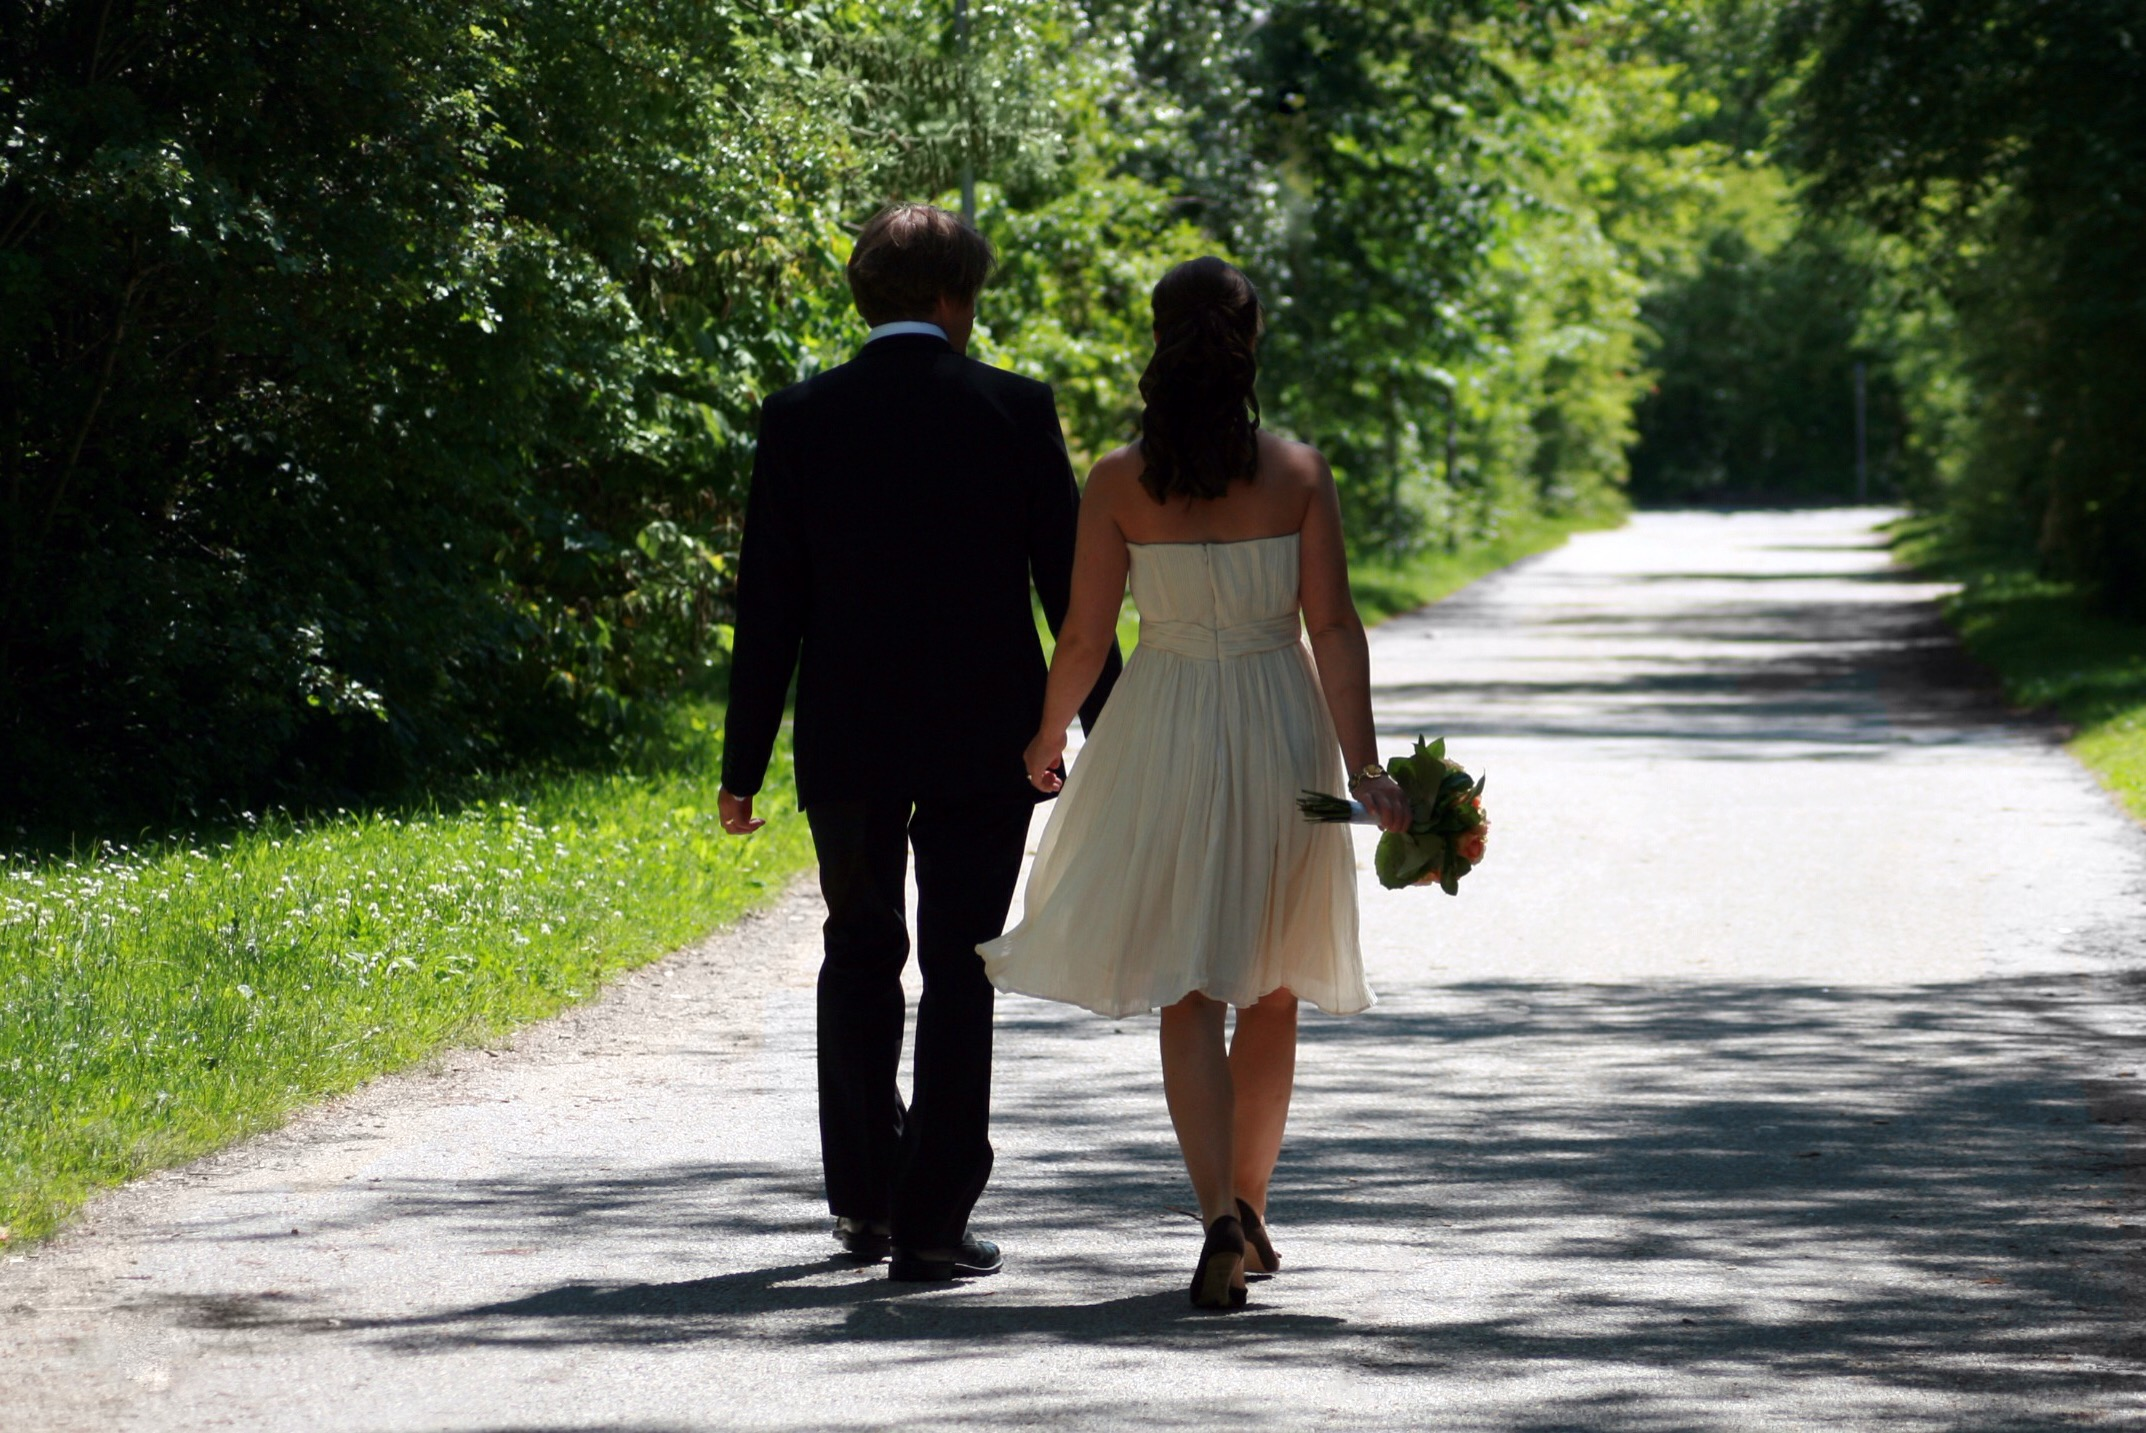 Married couple walking down country road enhanced